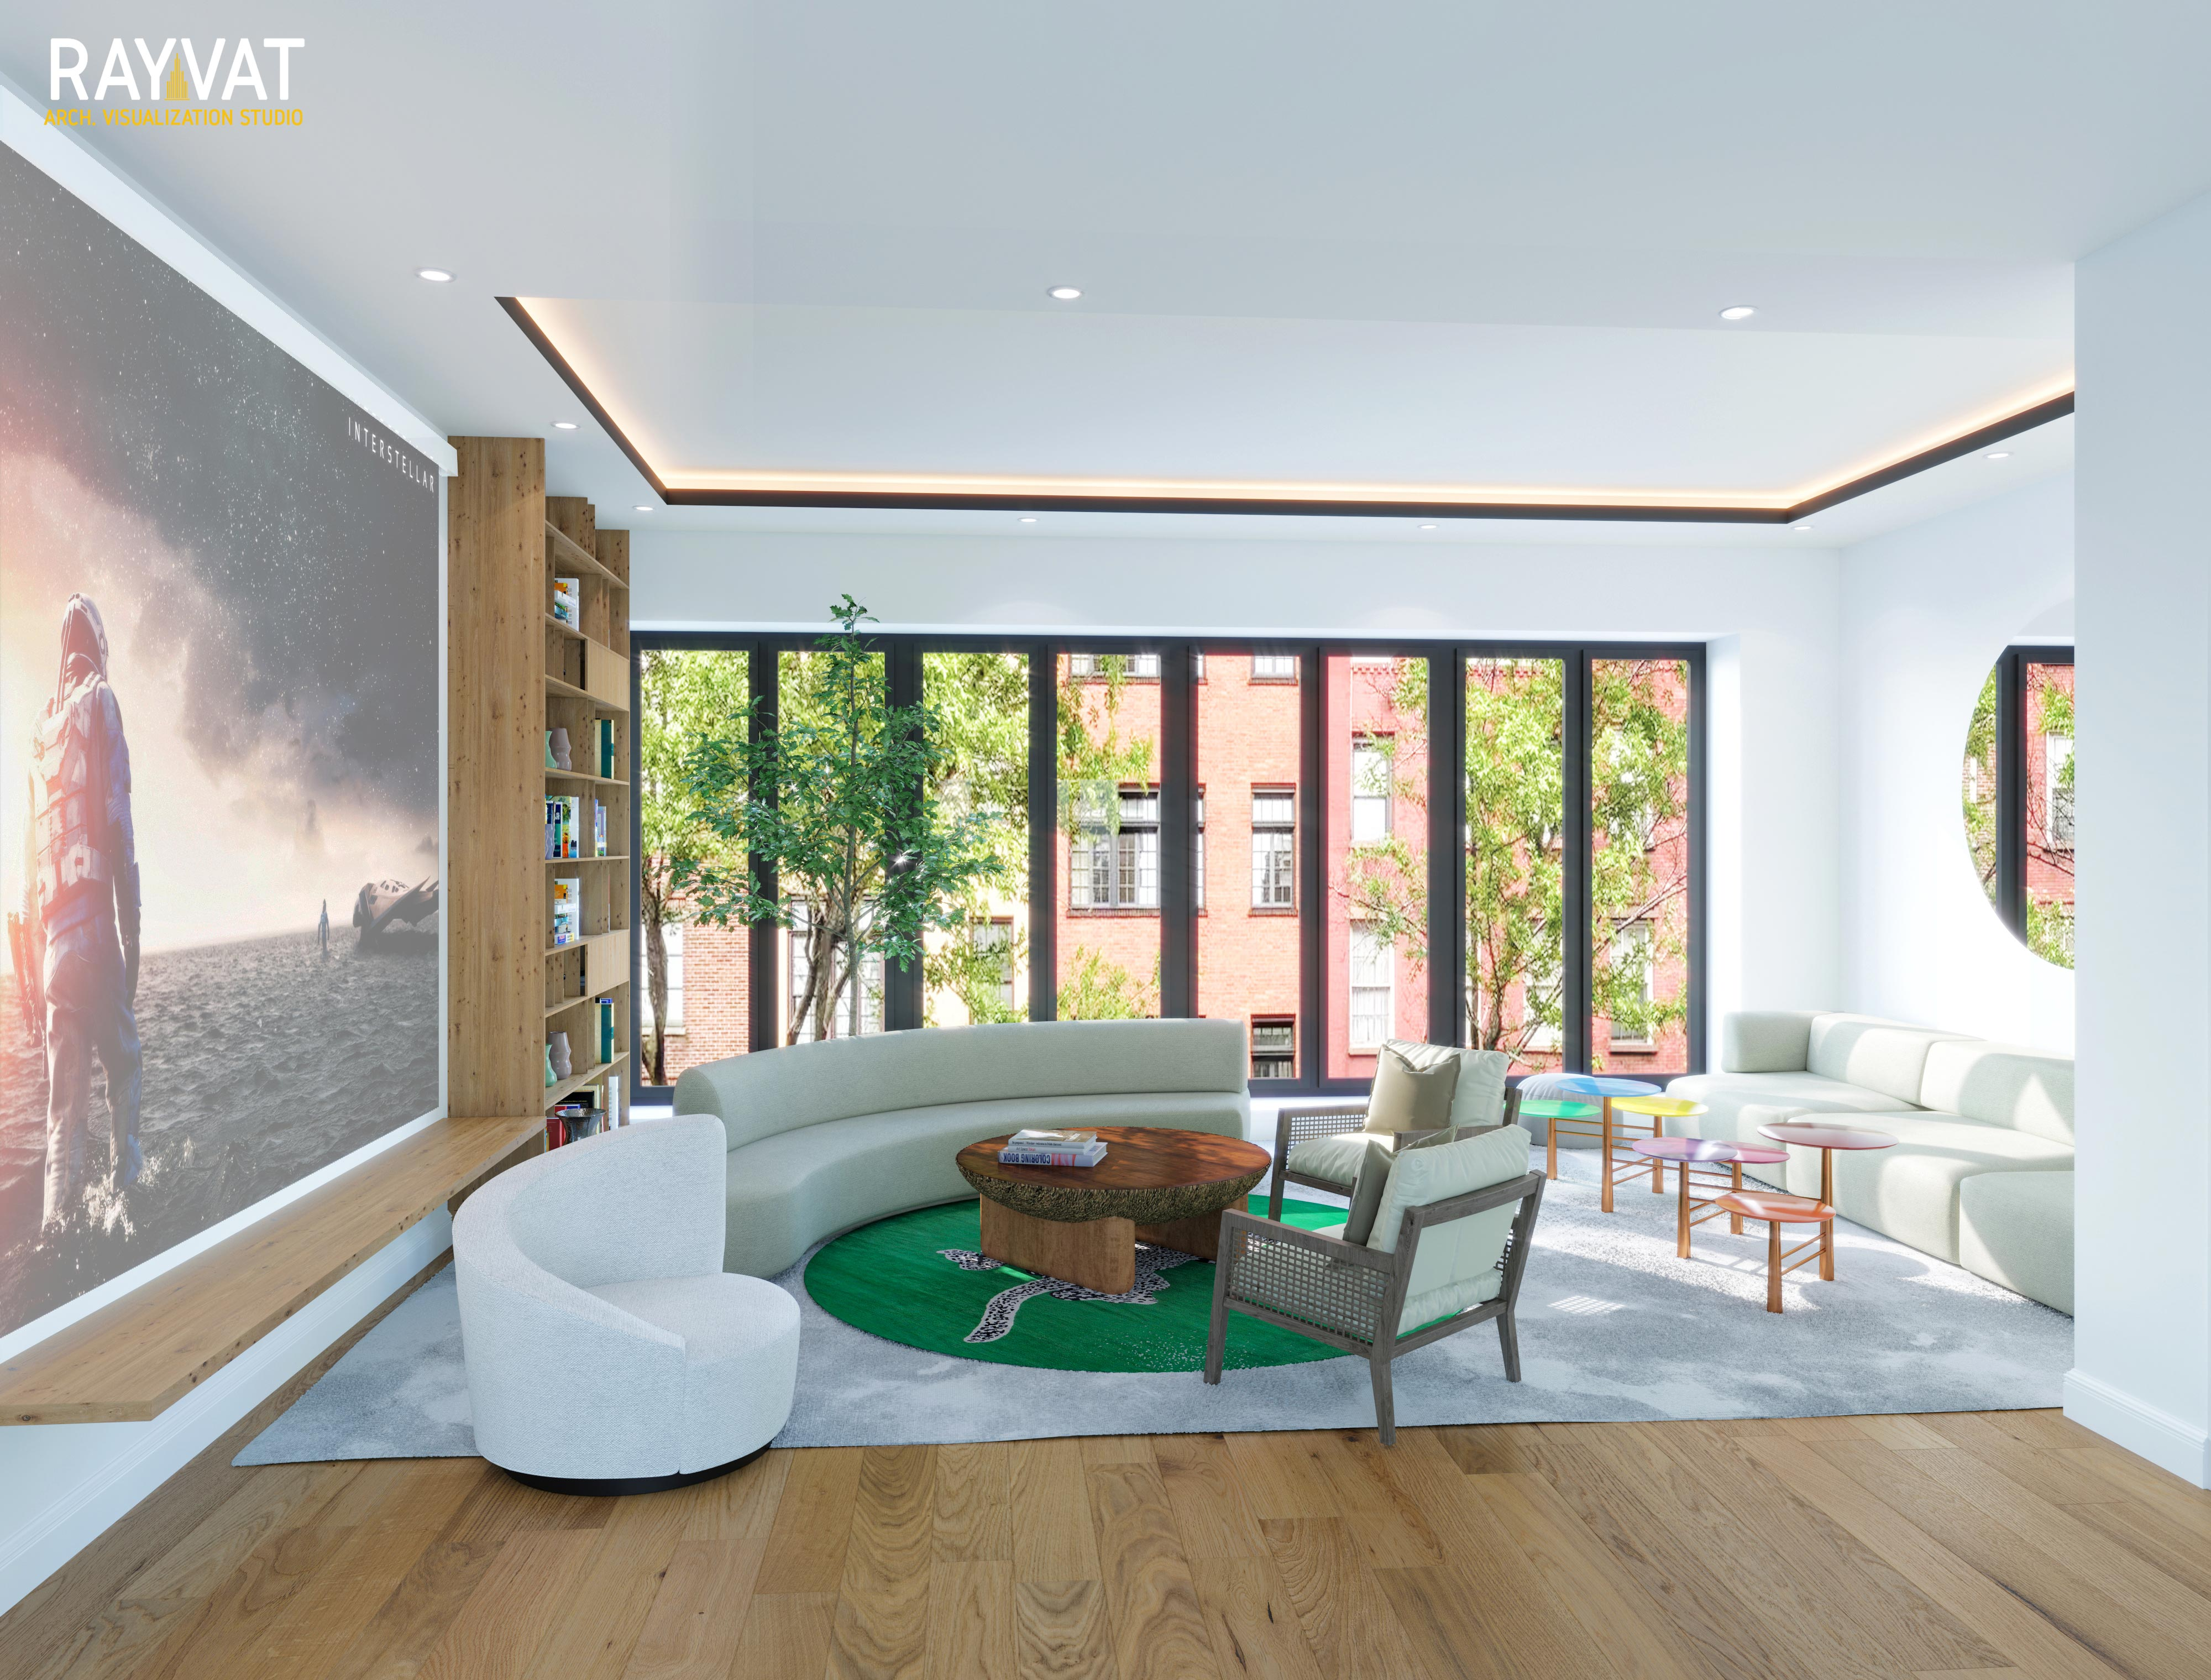 CG Images Perfectly Showcase the Formal and Informal Living Room CGI Atmosphere